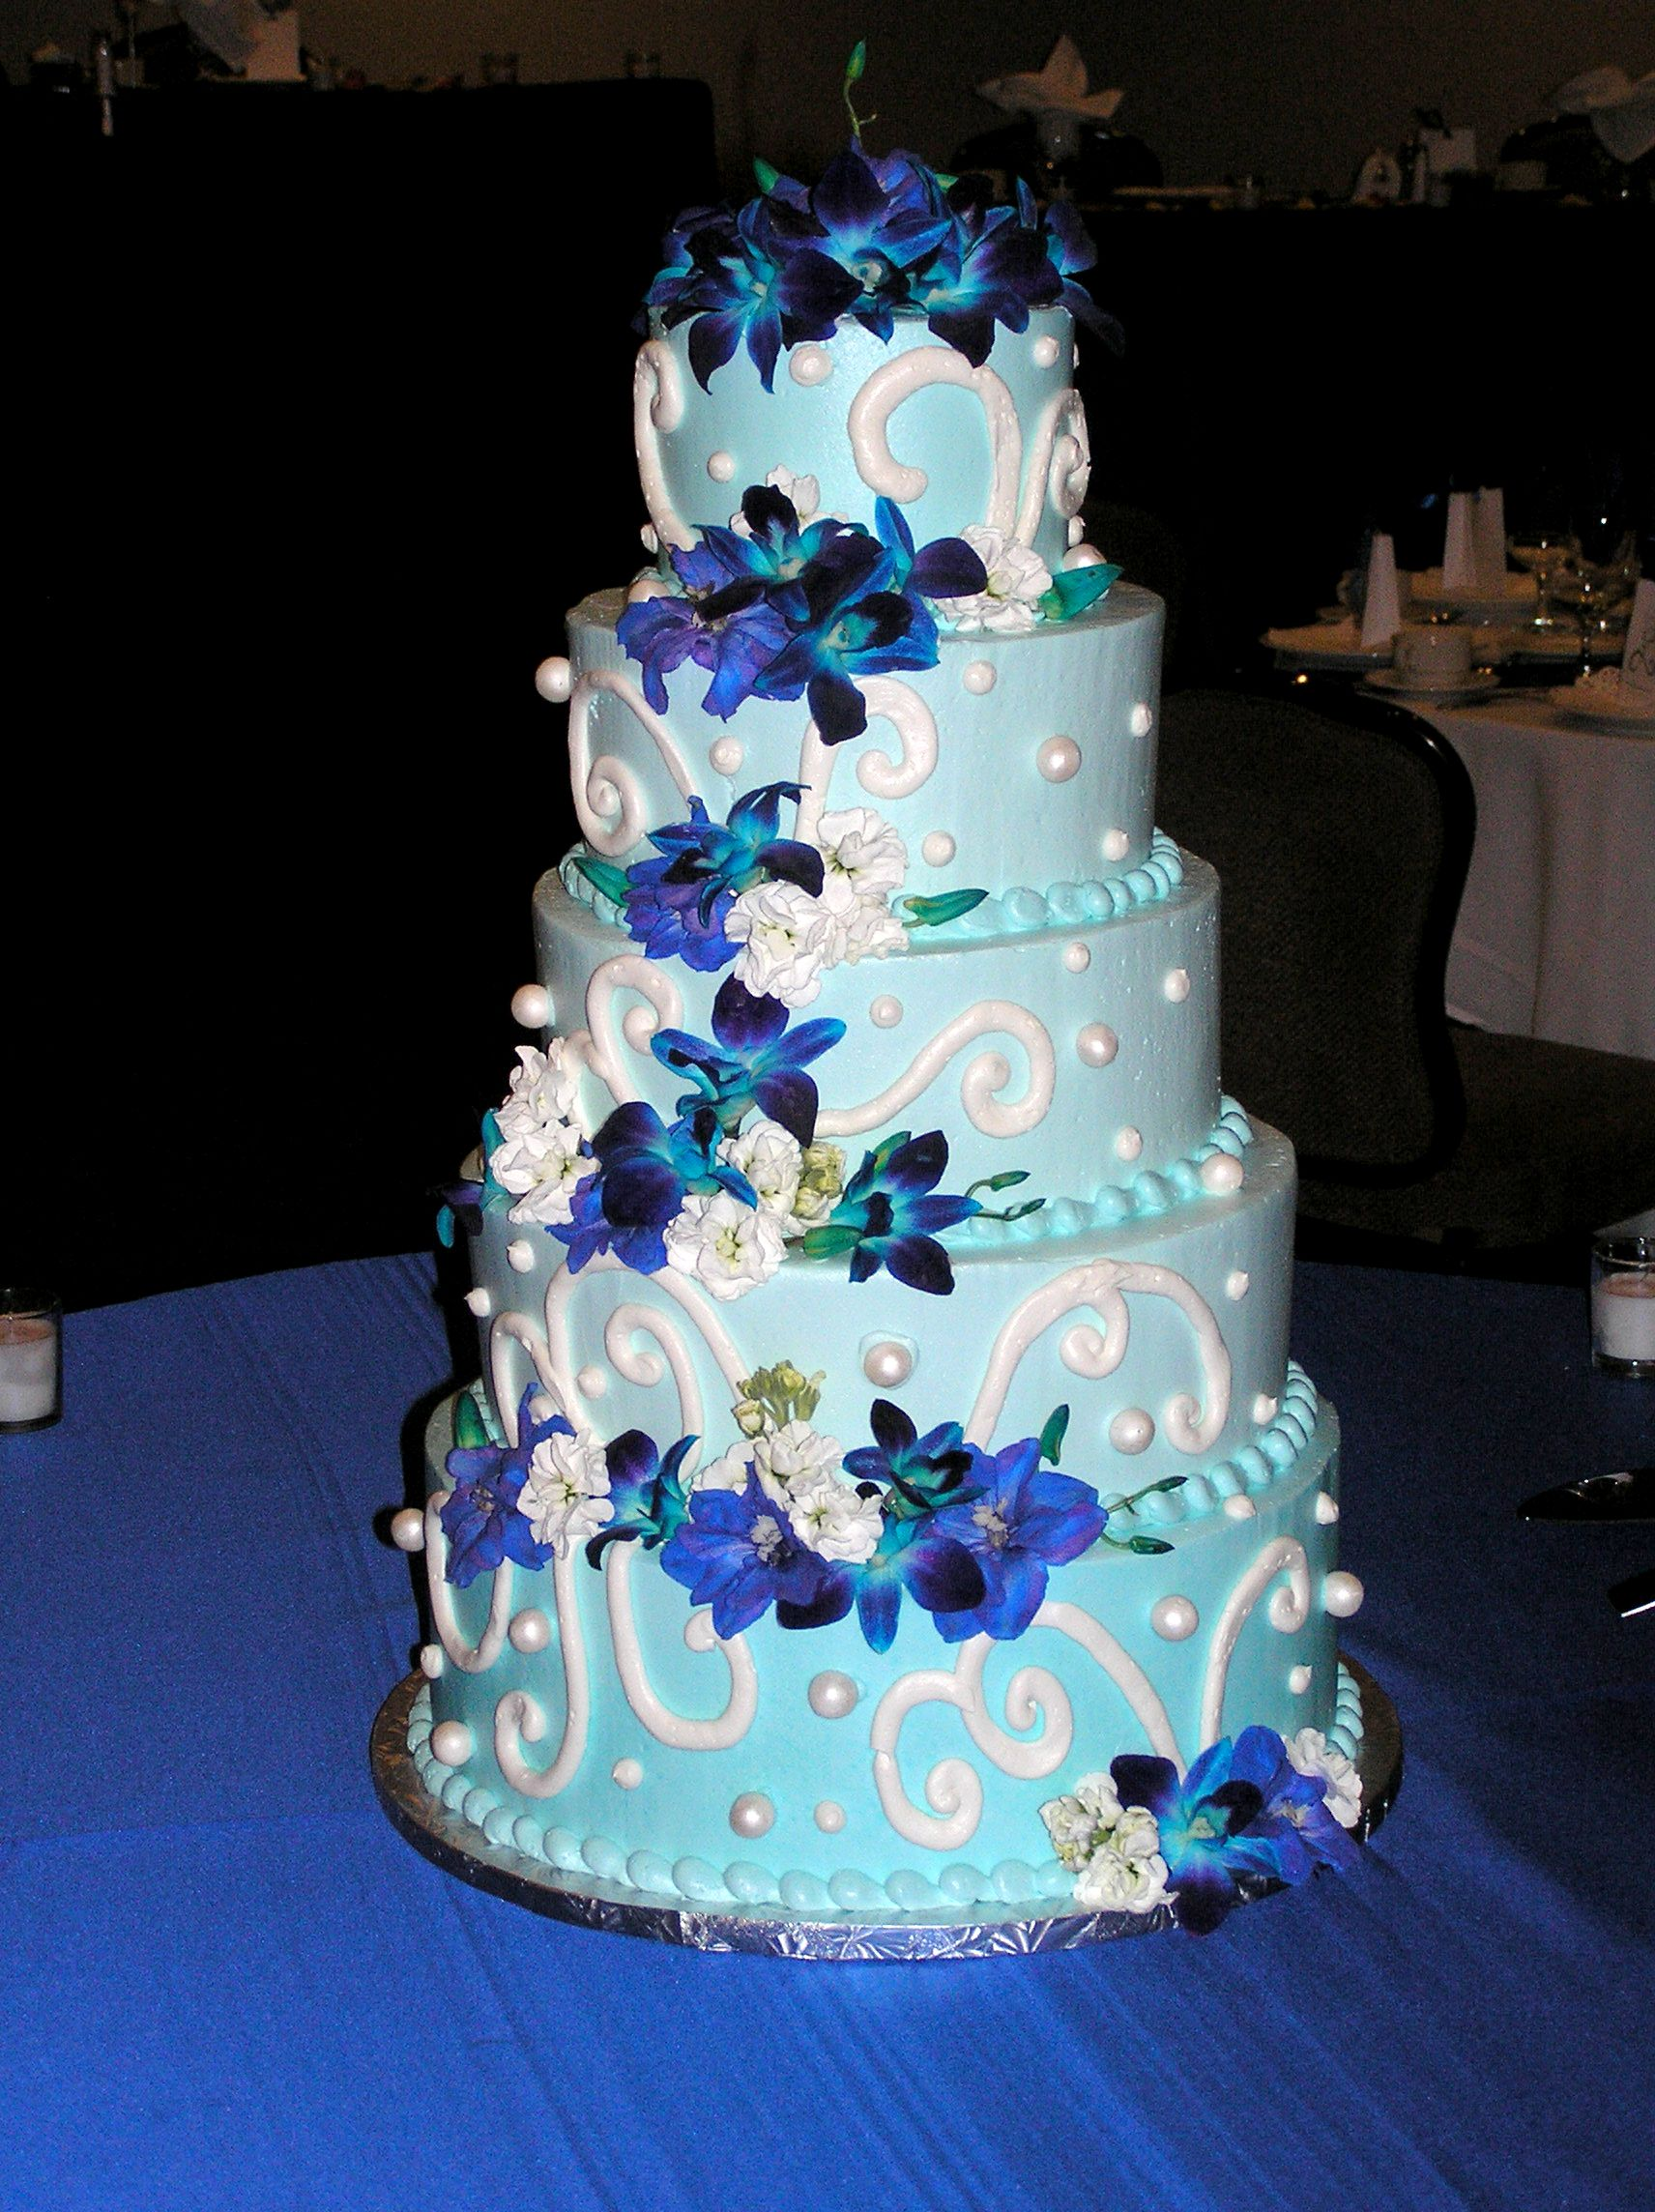 Wedding decorations royal blue  cake boss wedding cakes  Michigan Wedding Cake Design Cake Bakery